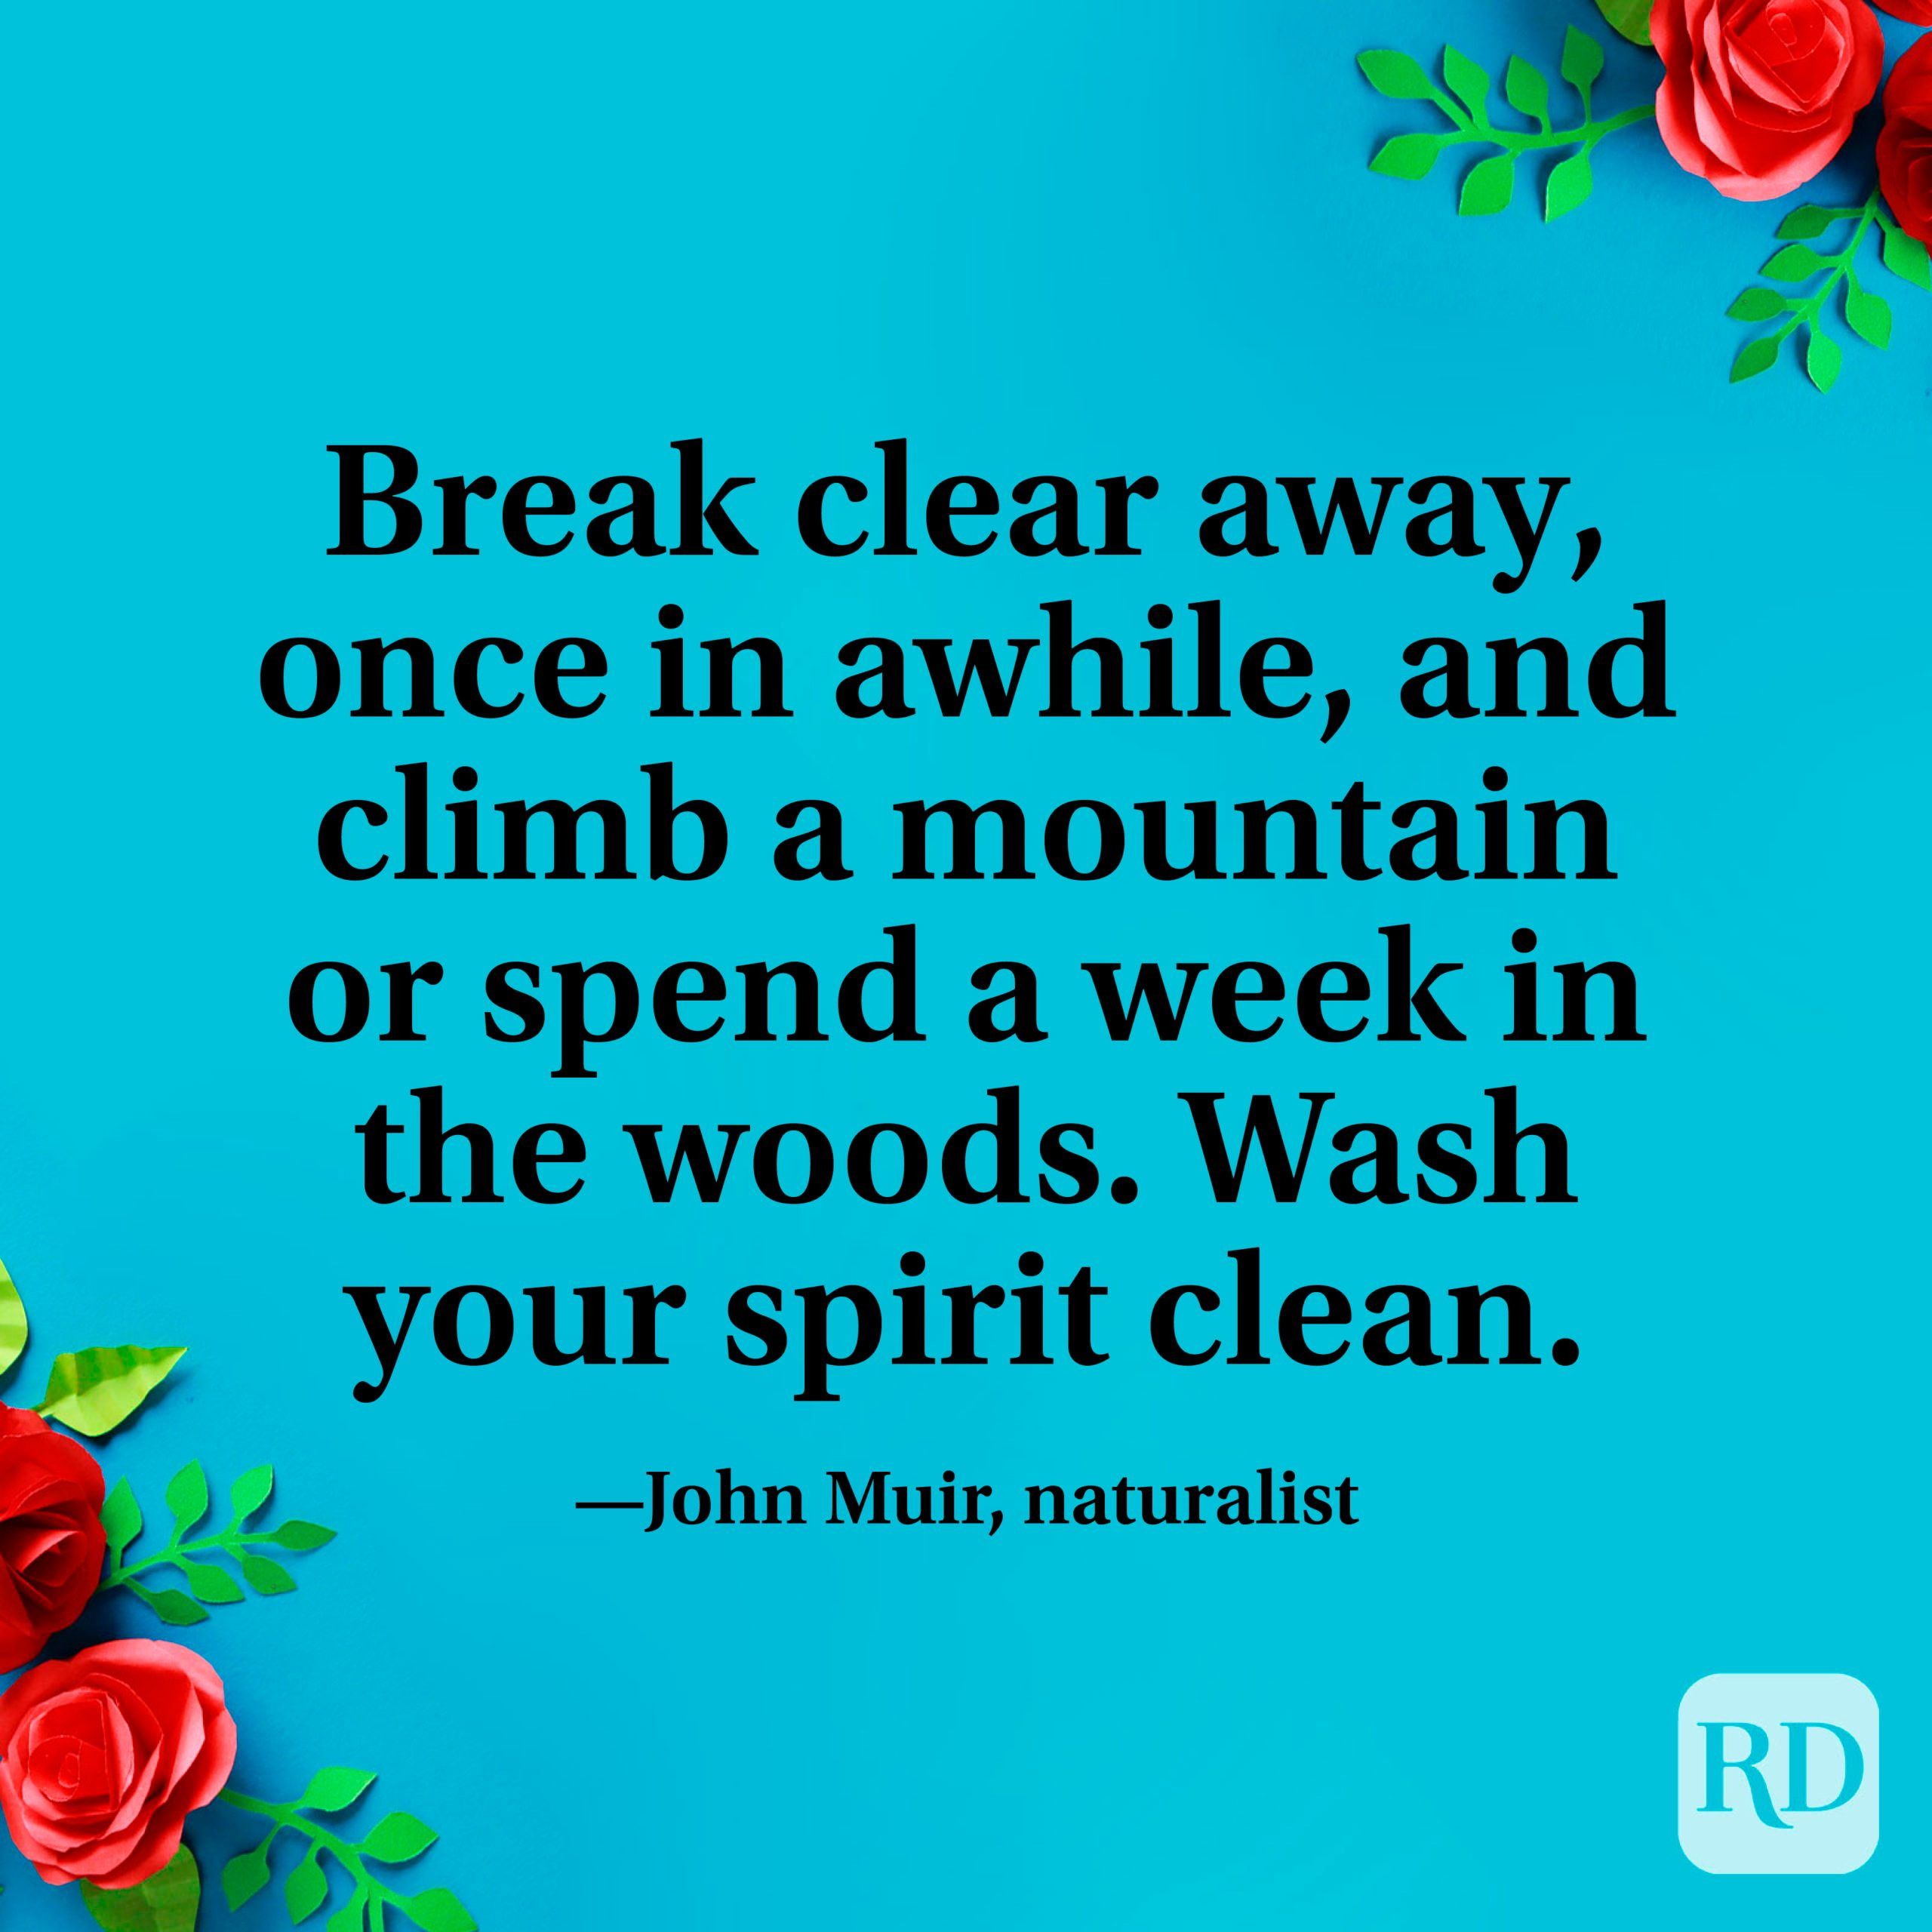 """""""Break clear away, once in awhile, and climb a mountain or spend a week in the woods. Wash your spirit clean."""" —John Muir, naturalist"""